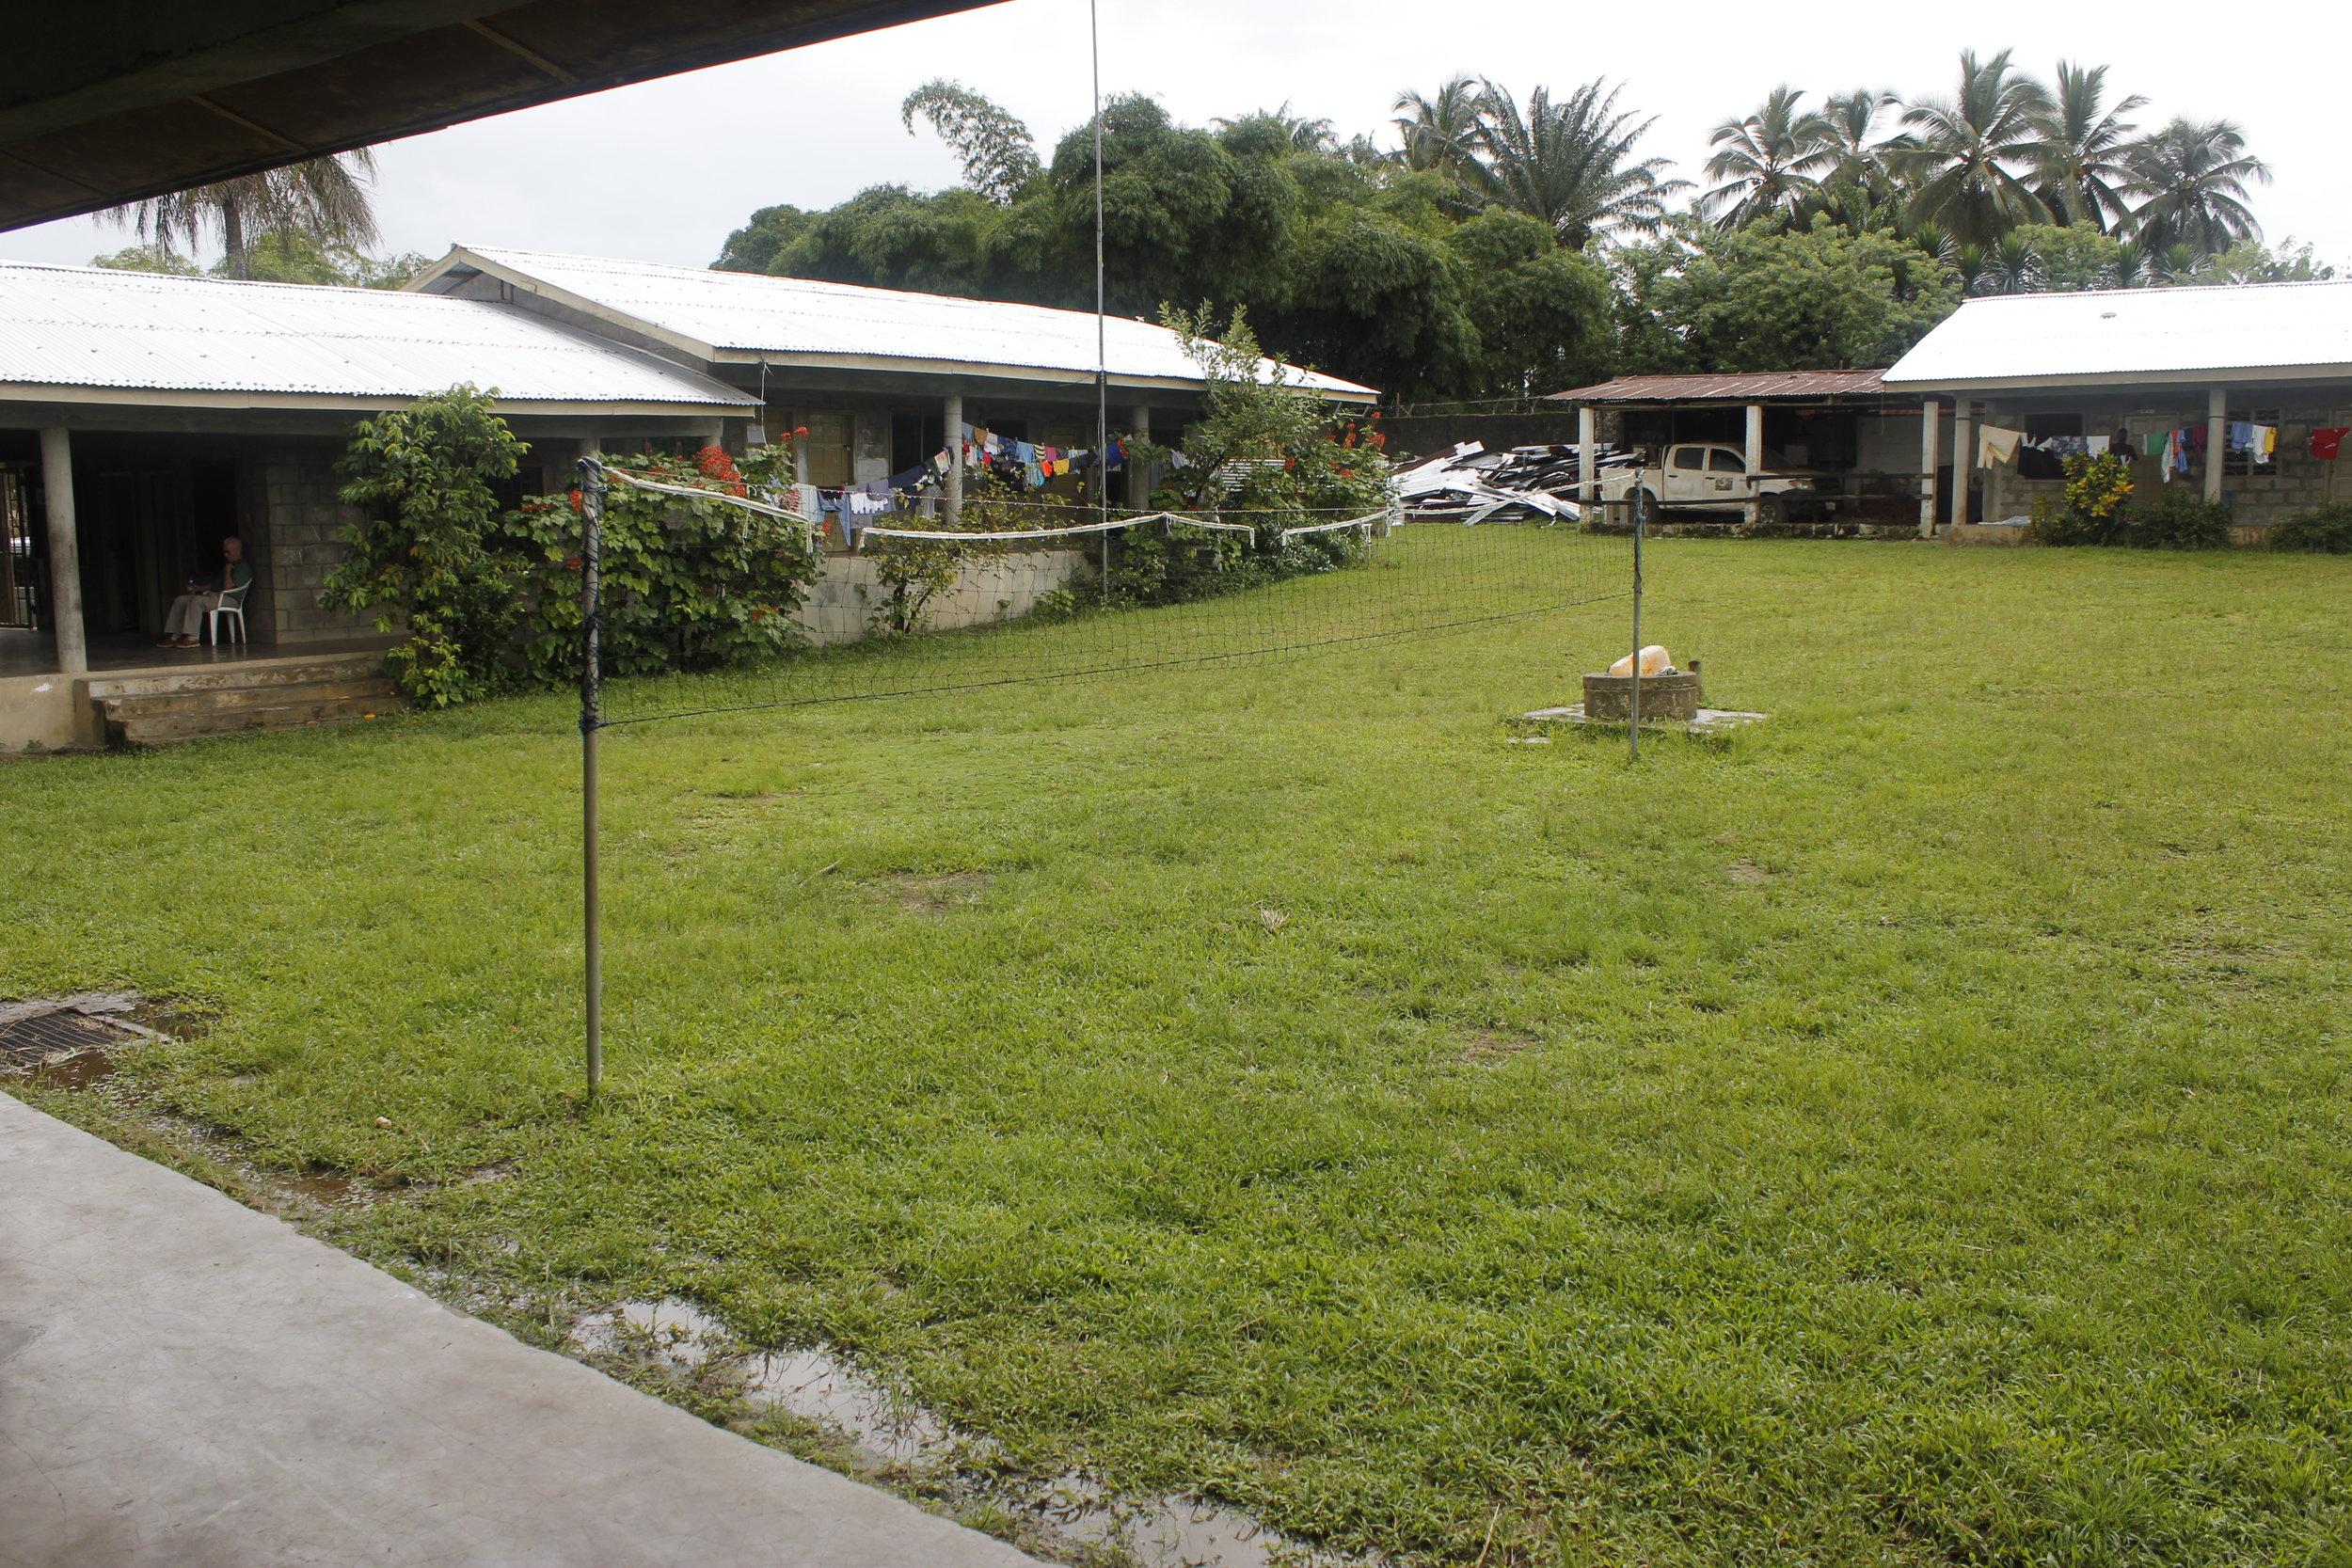 Liberia Mission's Courtyard